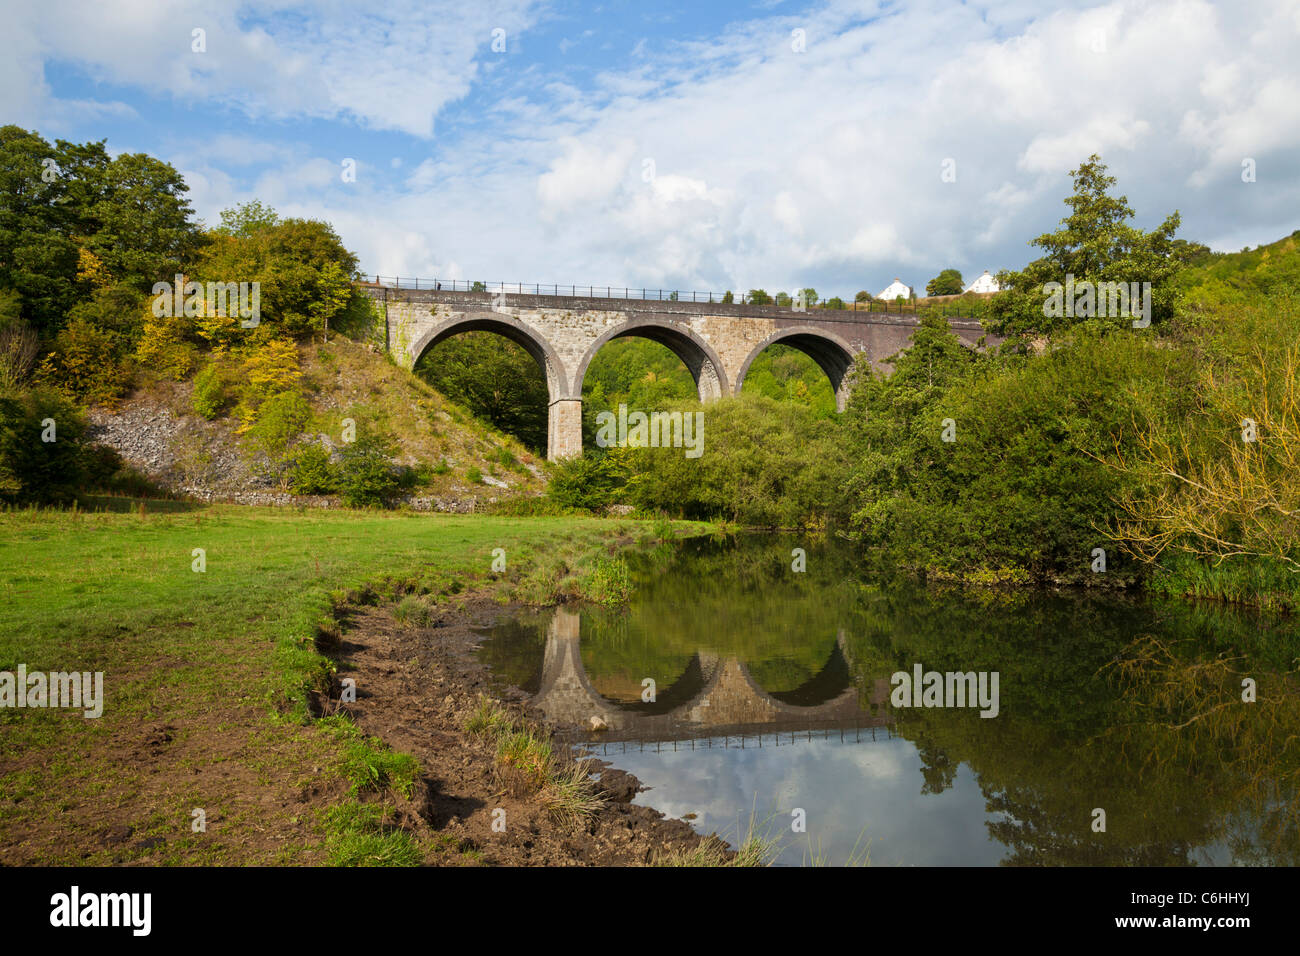 monsal head headstone viaduct a disused railway viaduct over the river wye derbyshire peak district national park - Stock Image